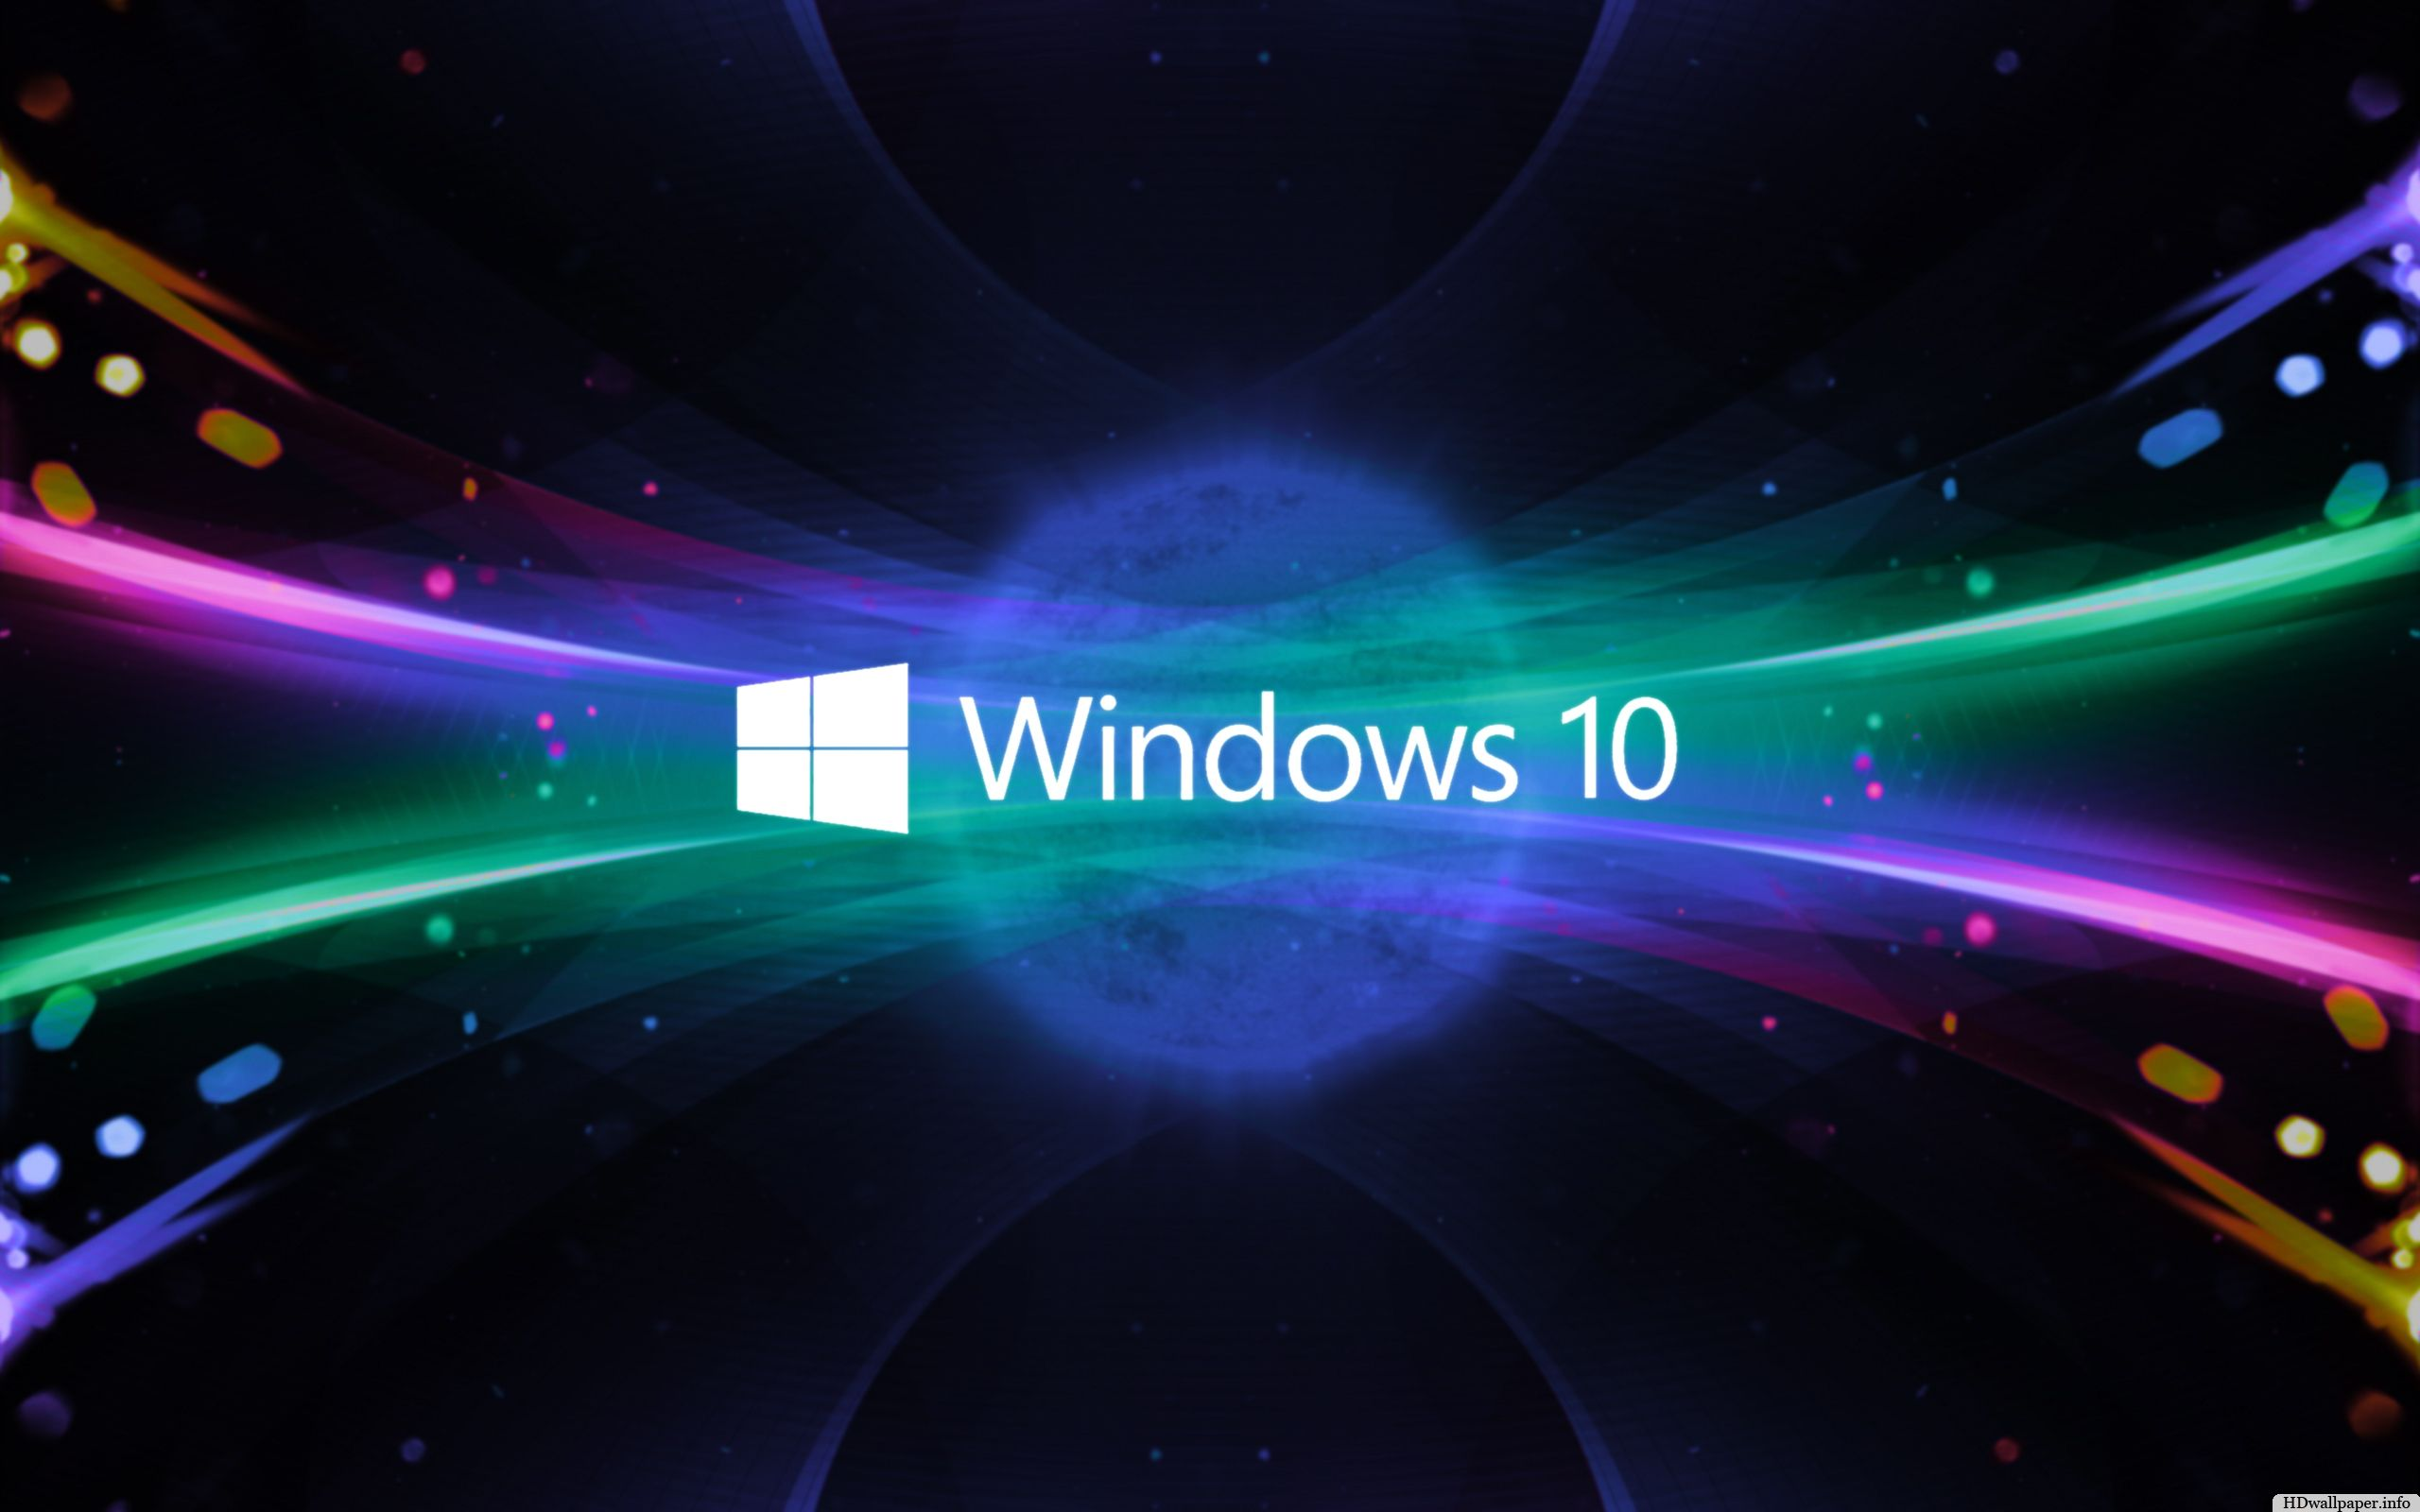 windows 10 3d - photo #48